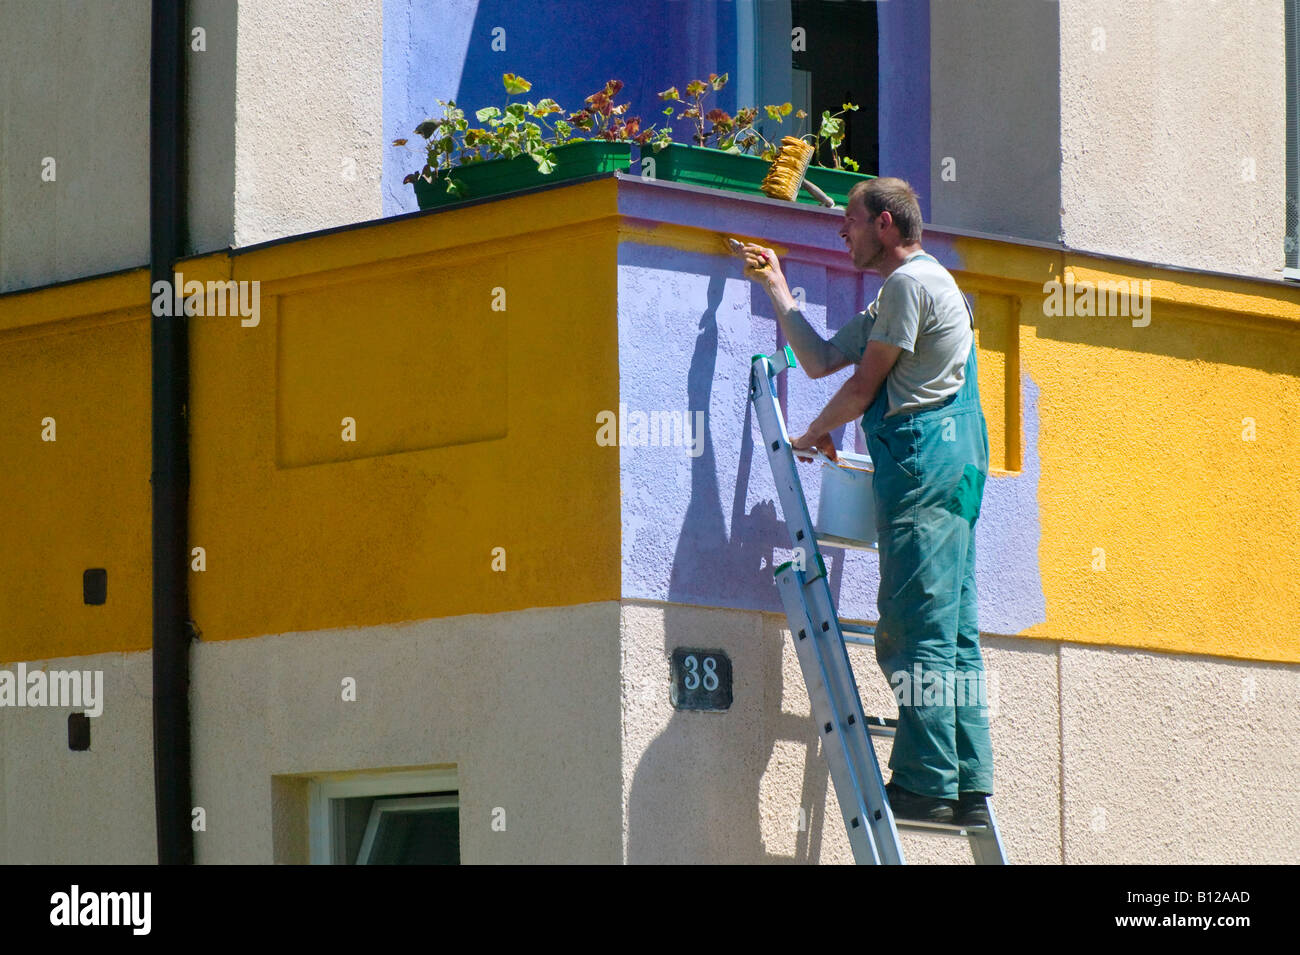 Man painting house Cesky Krumlov République Tchèque Photo Stock